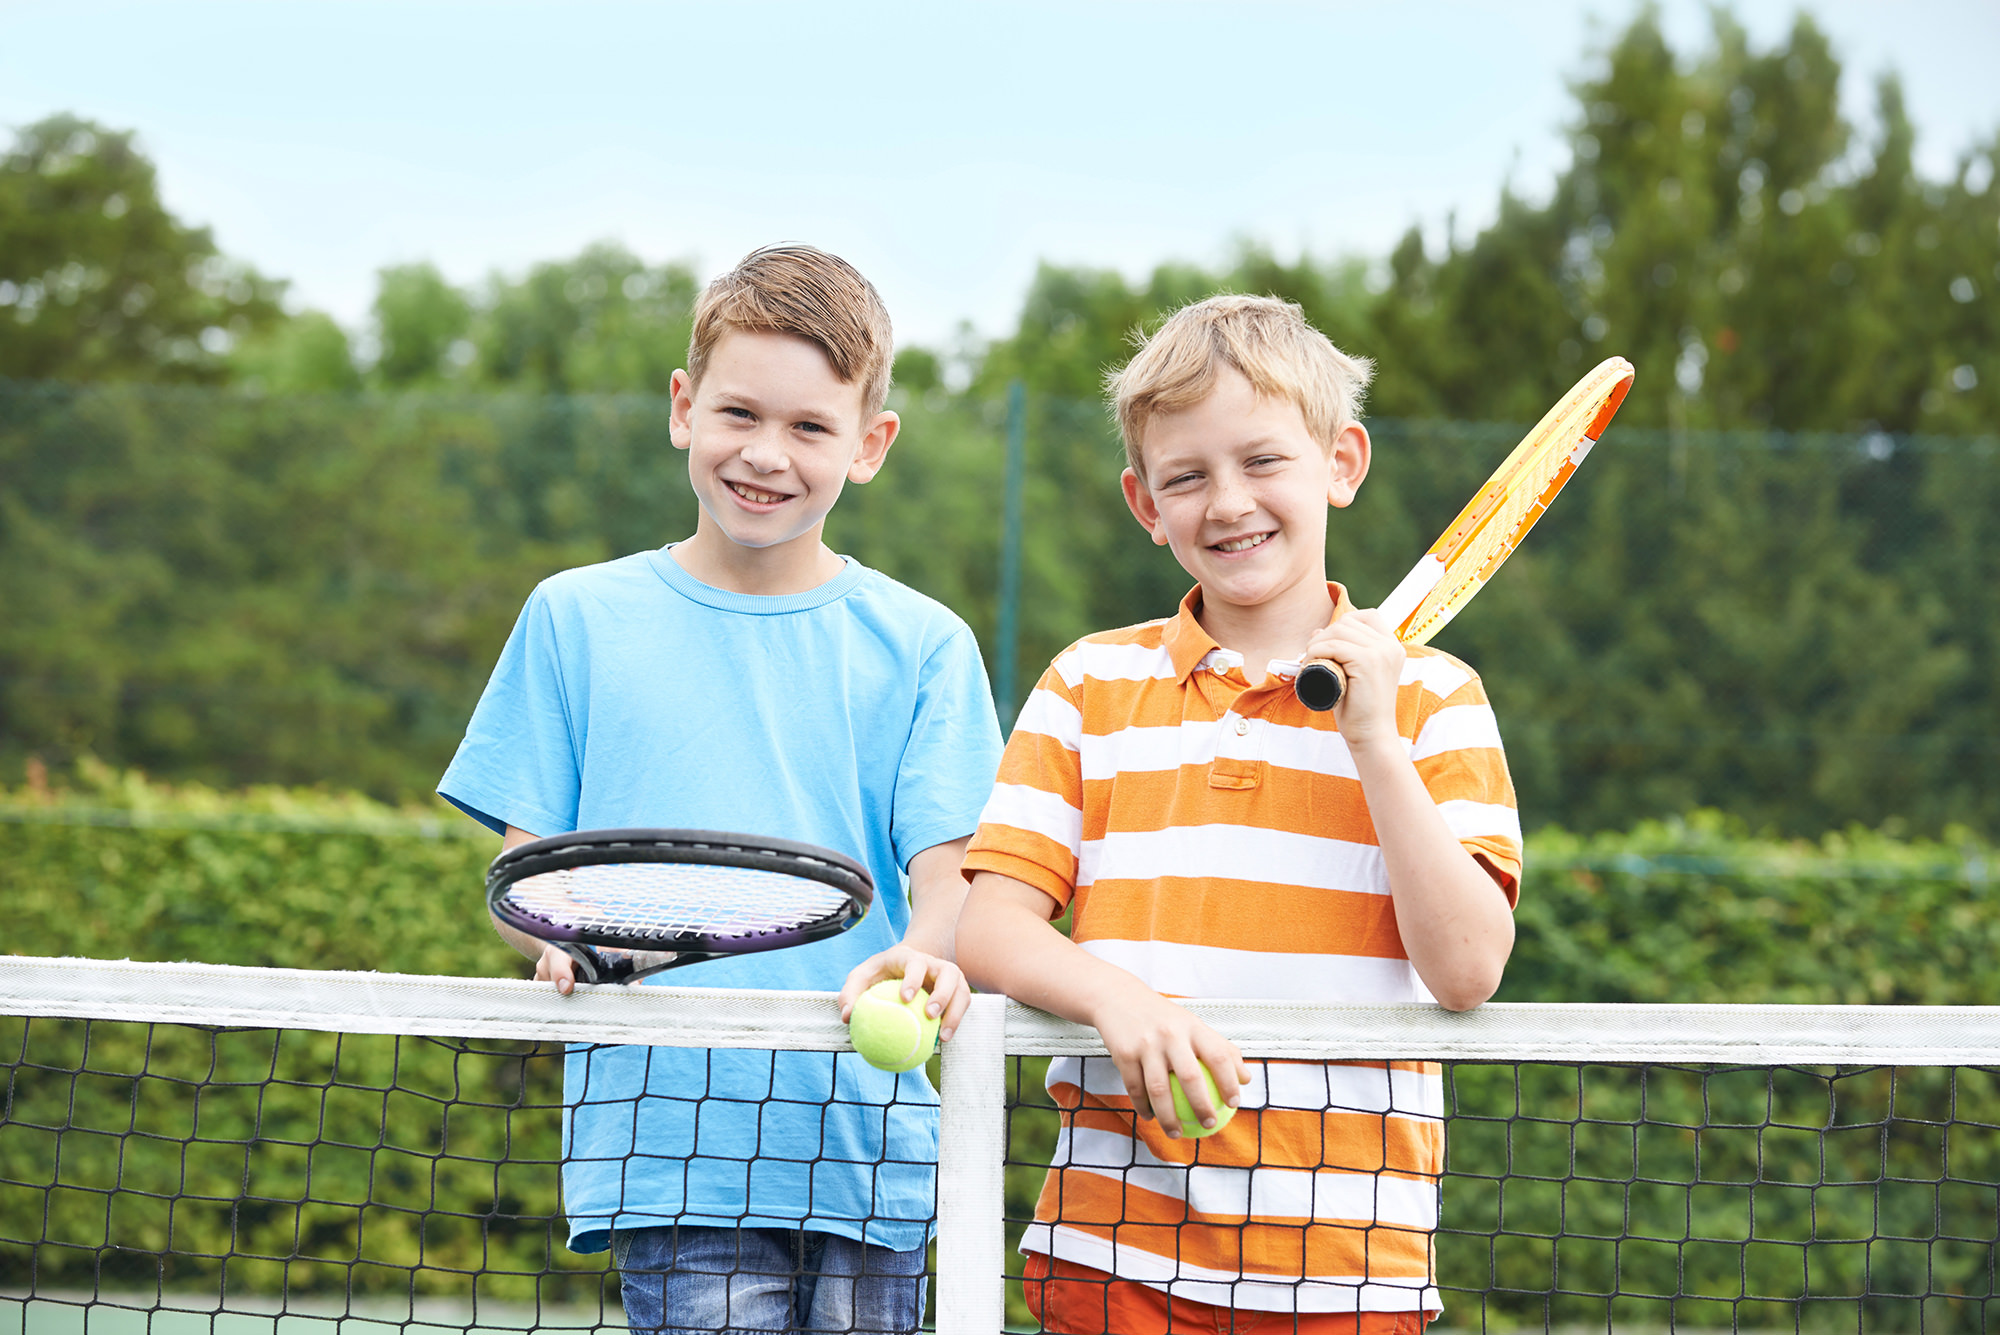 Portrait Of Two Boys Playing Tennis Together